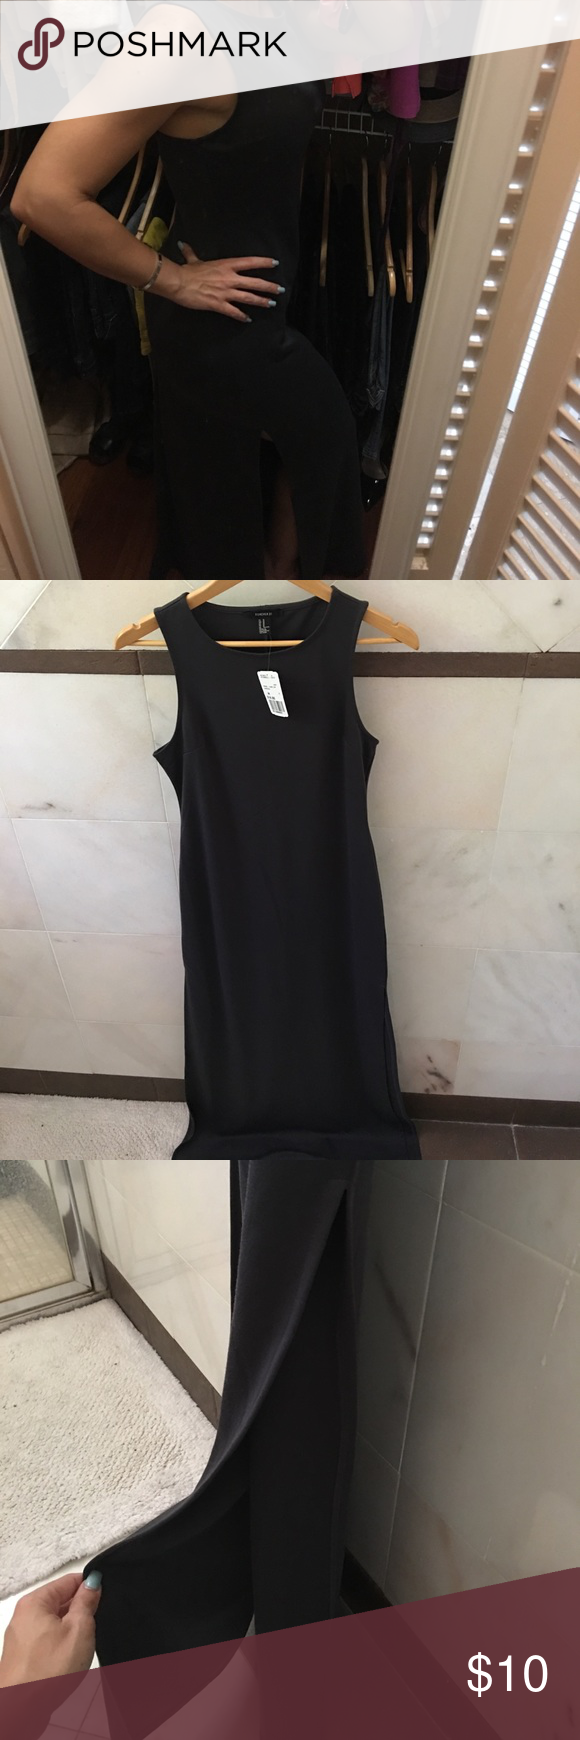 NWT maxi side slit dress Very stylish, arms are just not long enough to get the full detail. Please let me know if more pics are needed Forever 21 Dresses Maxi